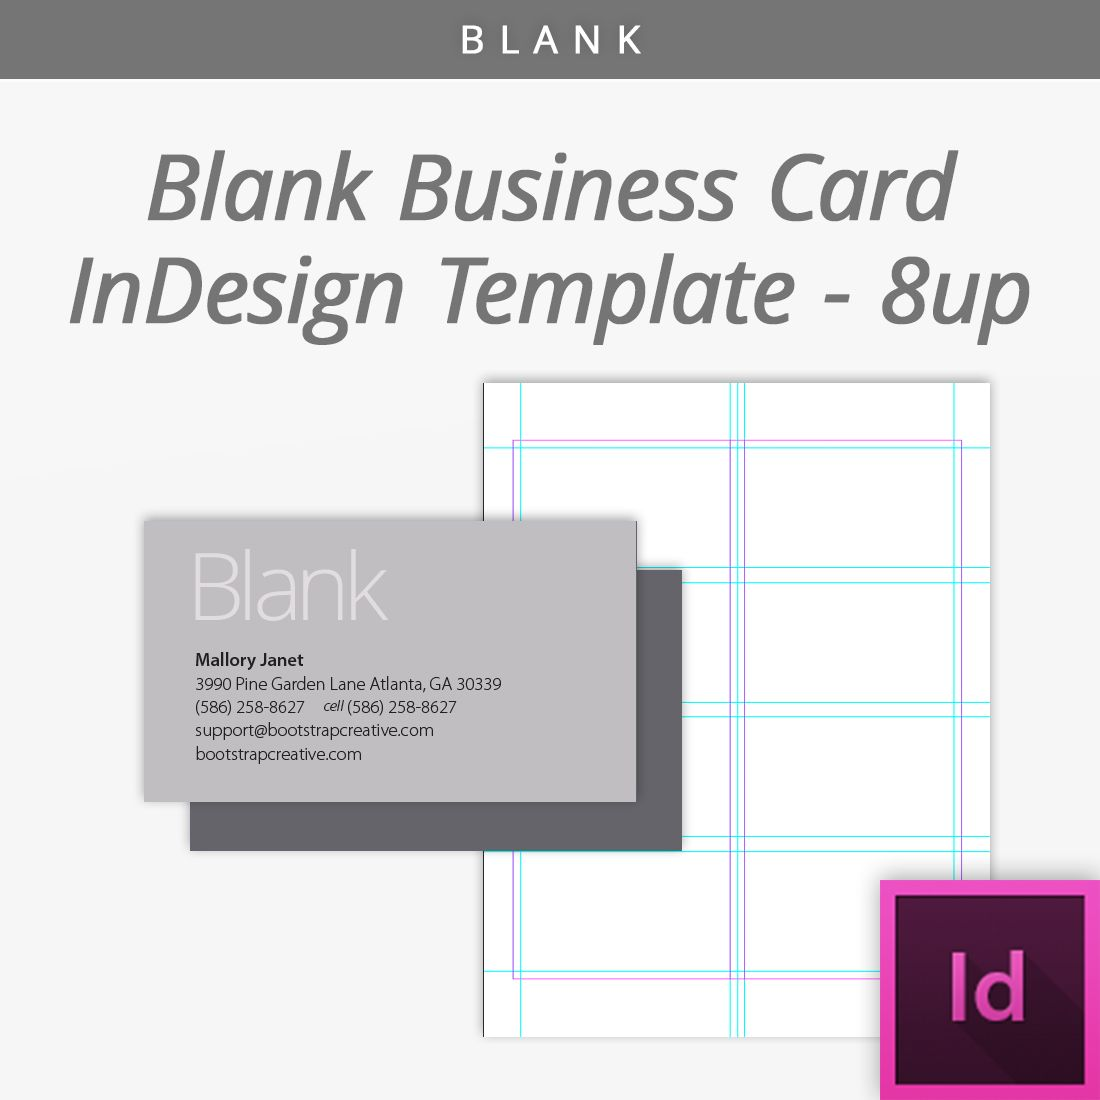 Blank indesign business card template 8 up free download blank indesign business card template 8 up free download designtemplate friedricerecipe Gallery